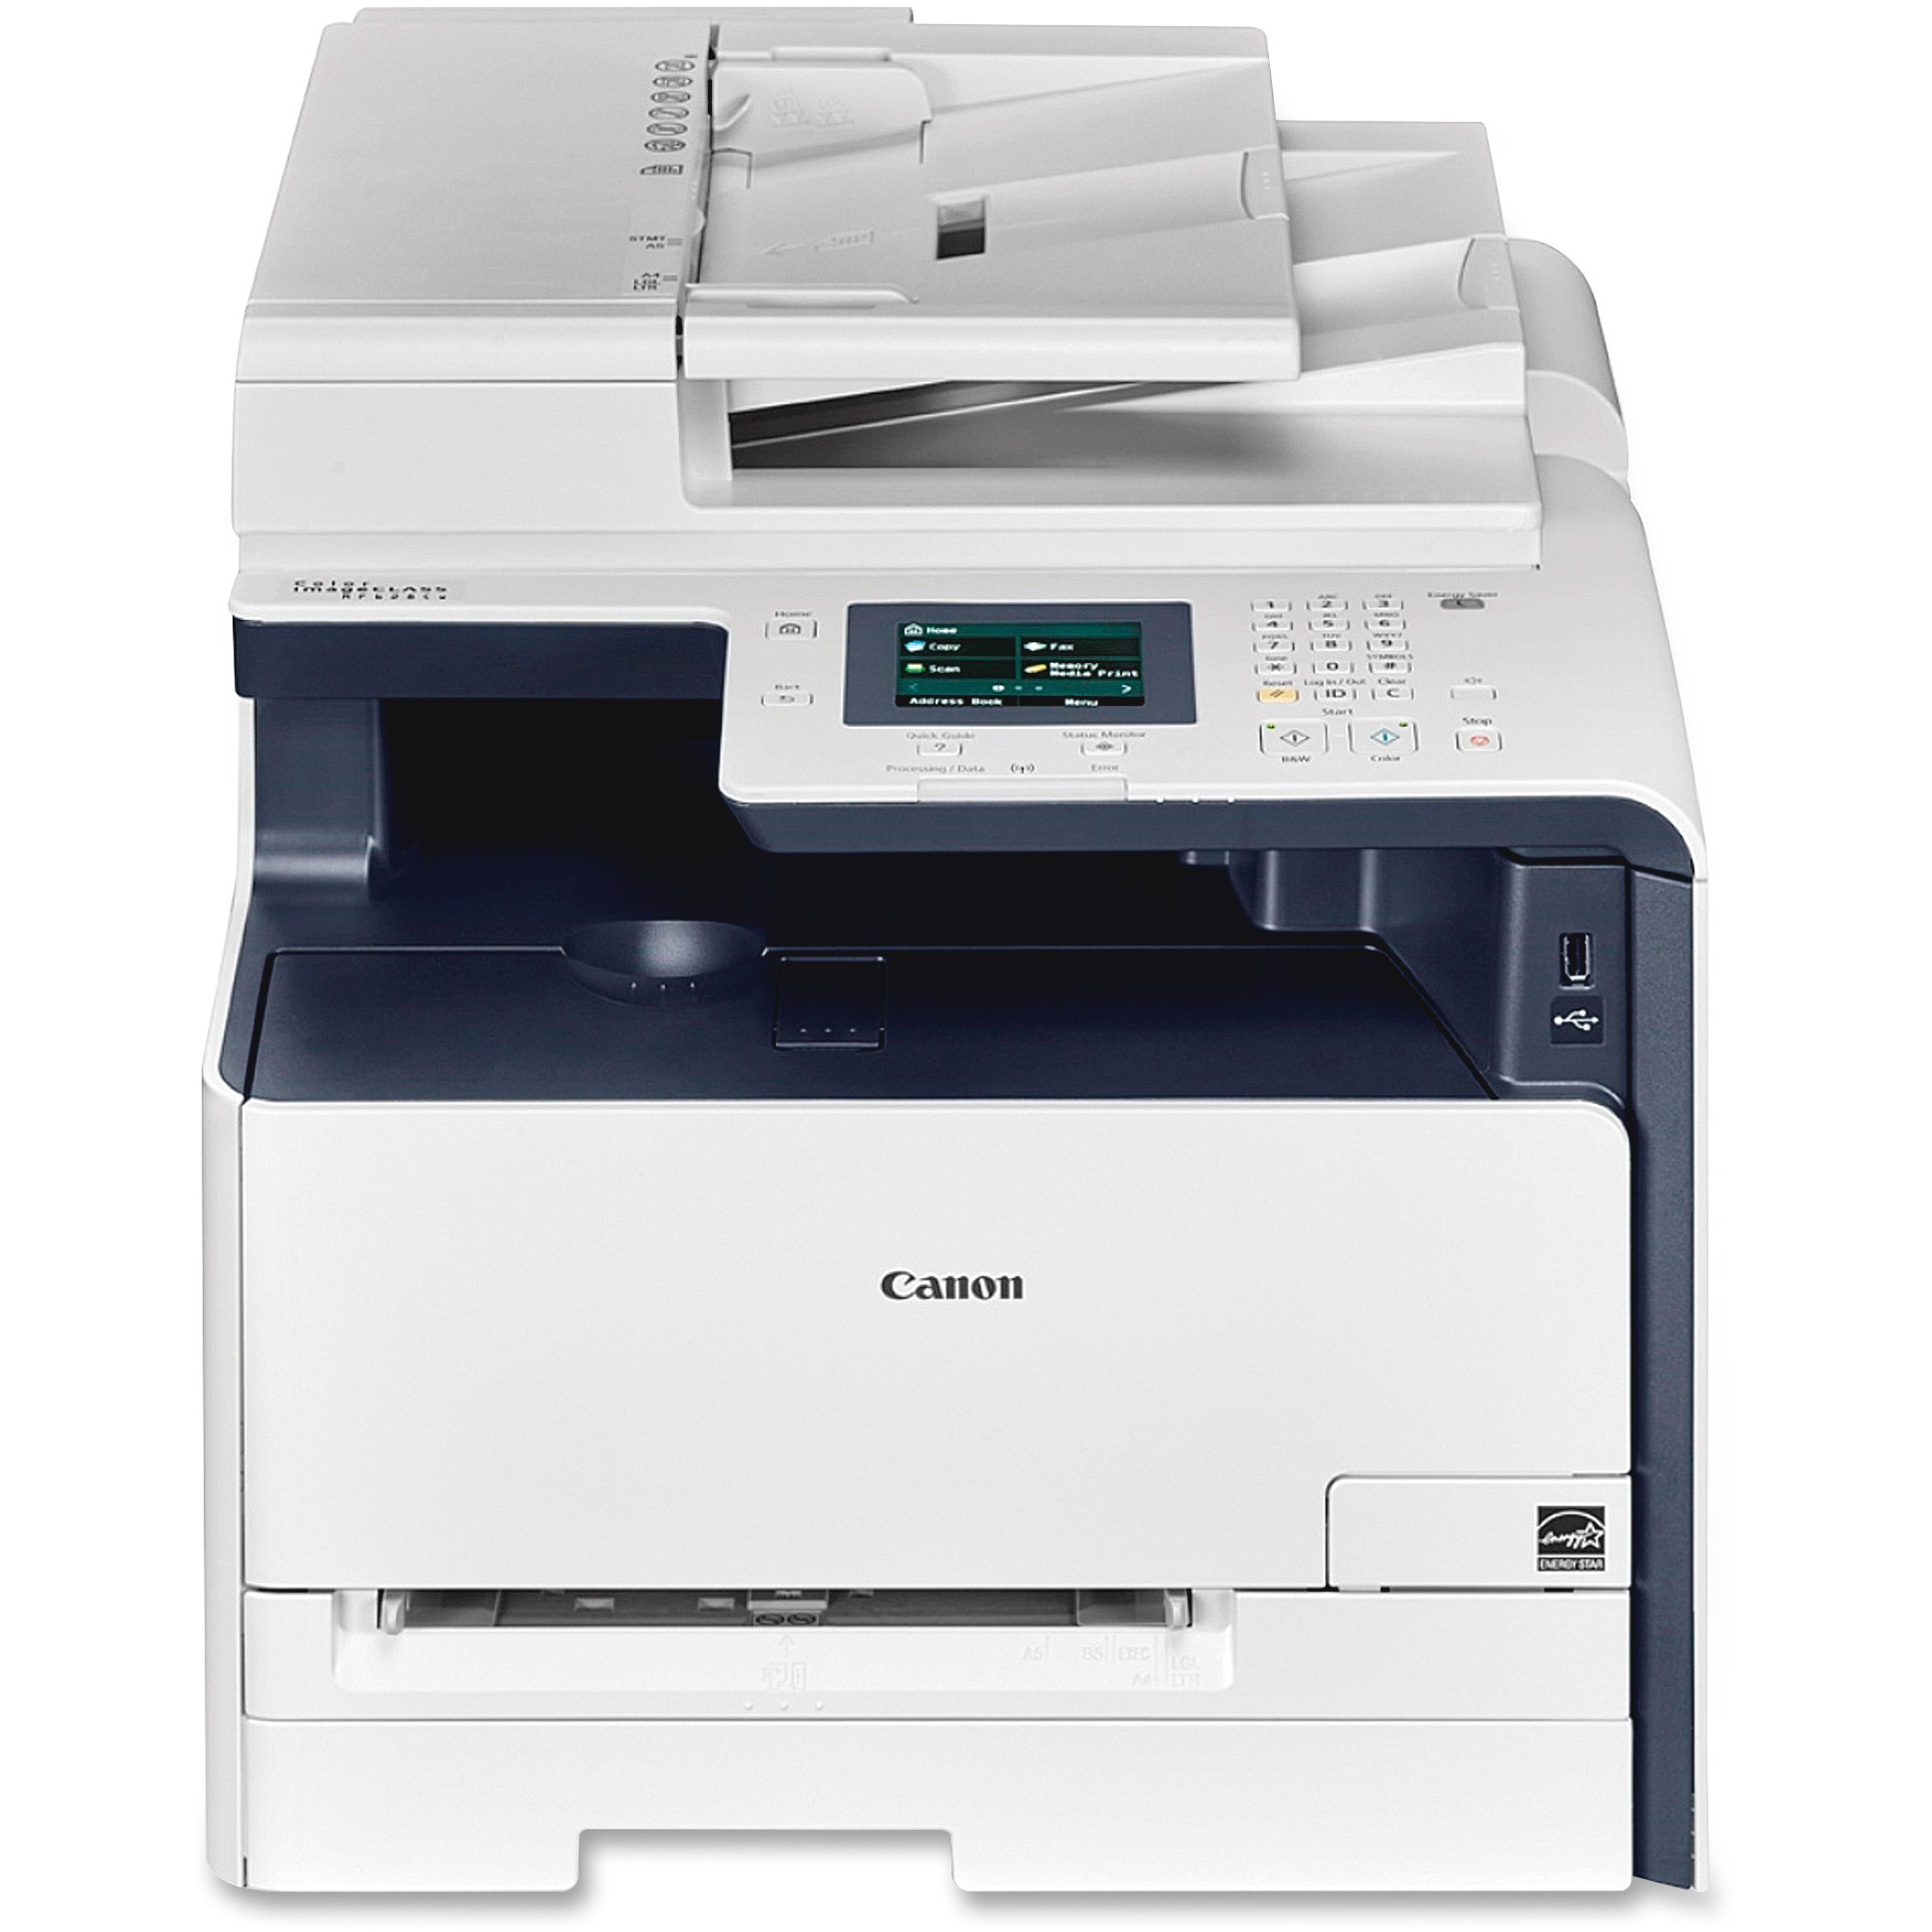 Canon imageCLASS MF628CW 4-In-1 Wireless Laser MFC, Copy/Fax/Print/Scan